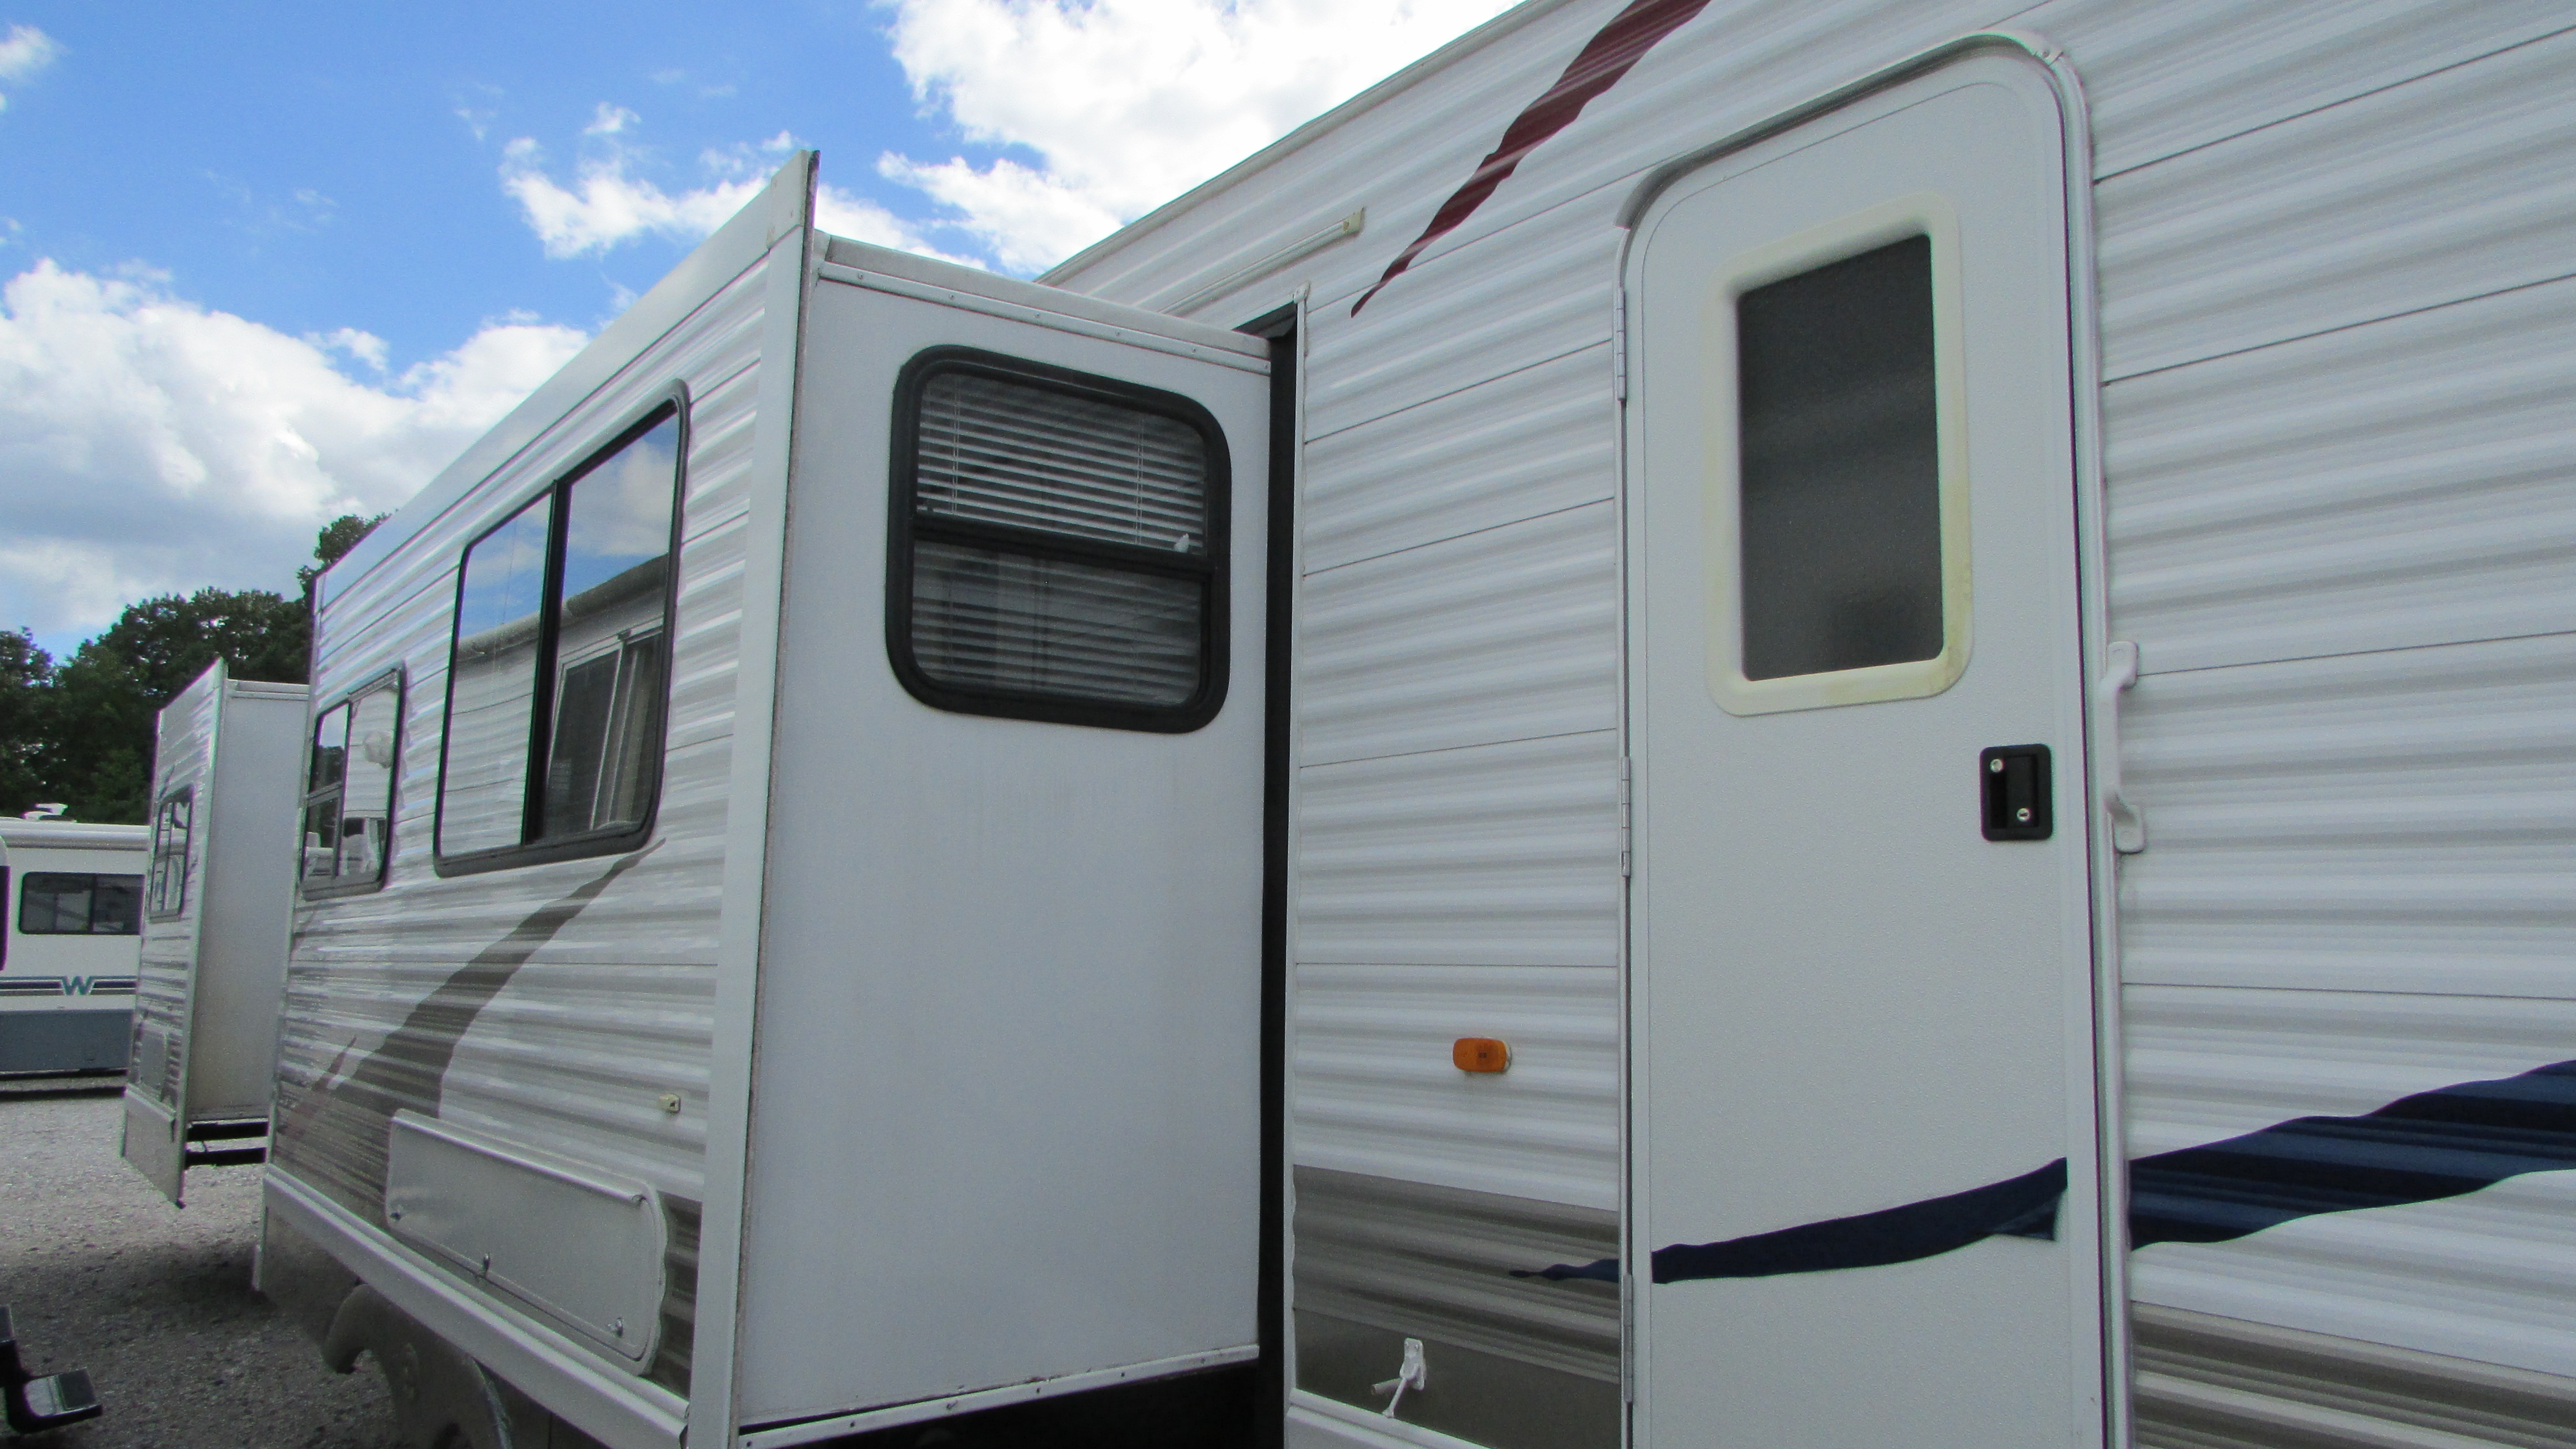 2009 palomino puma 39ptdbss destination travel trailer 3 slides 2 bedrooms 2 bathrooms Rv with 2 bedrooms 2 bathrooms